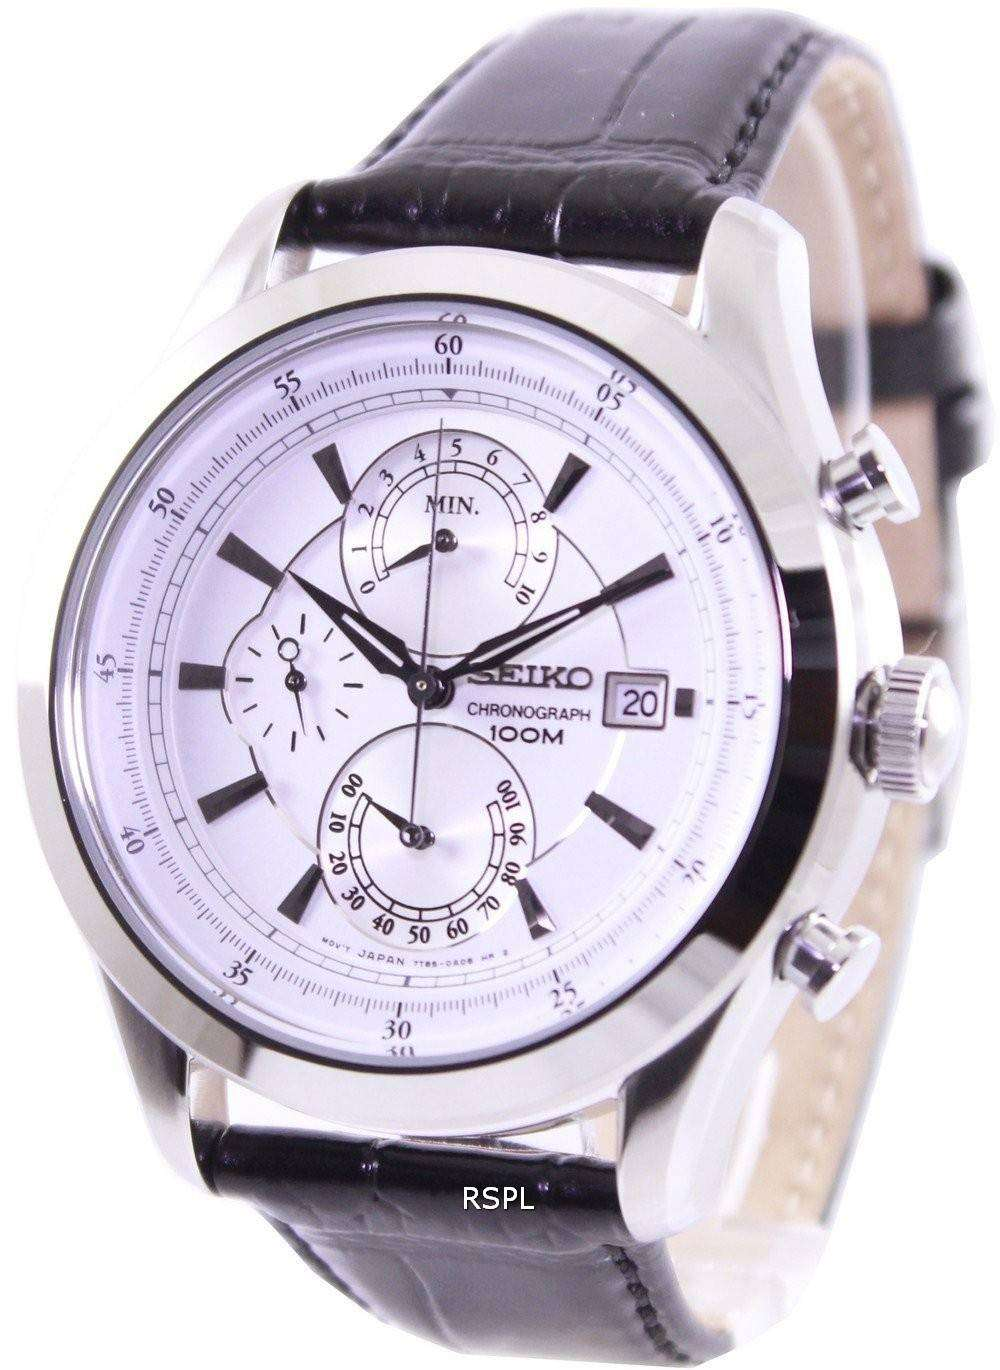 seiko chronograph 100m spc163p2 mens watch downunderwatches. Black Bedroom Furniture Sets. Home Design Ideas